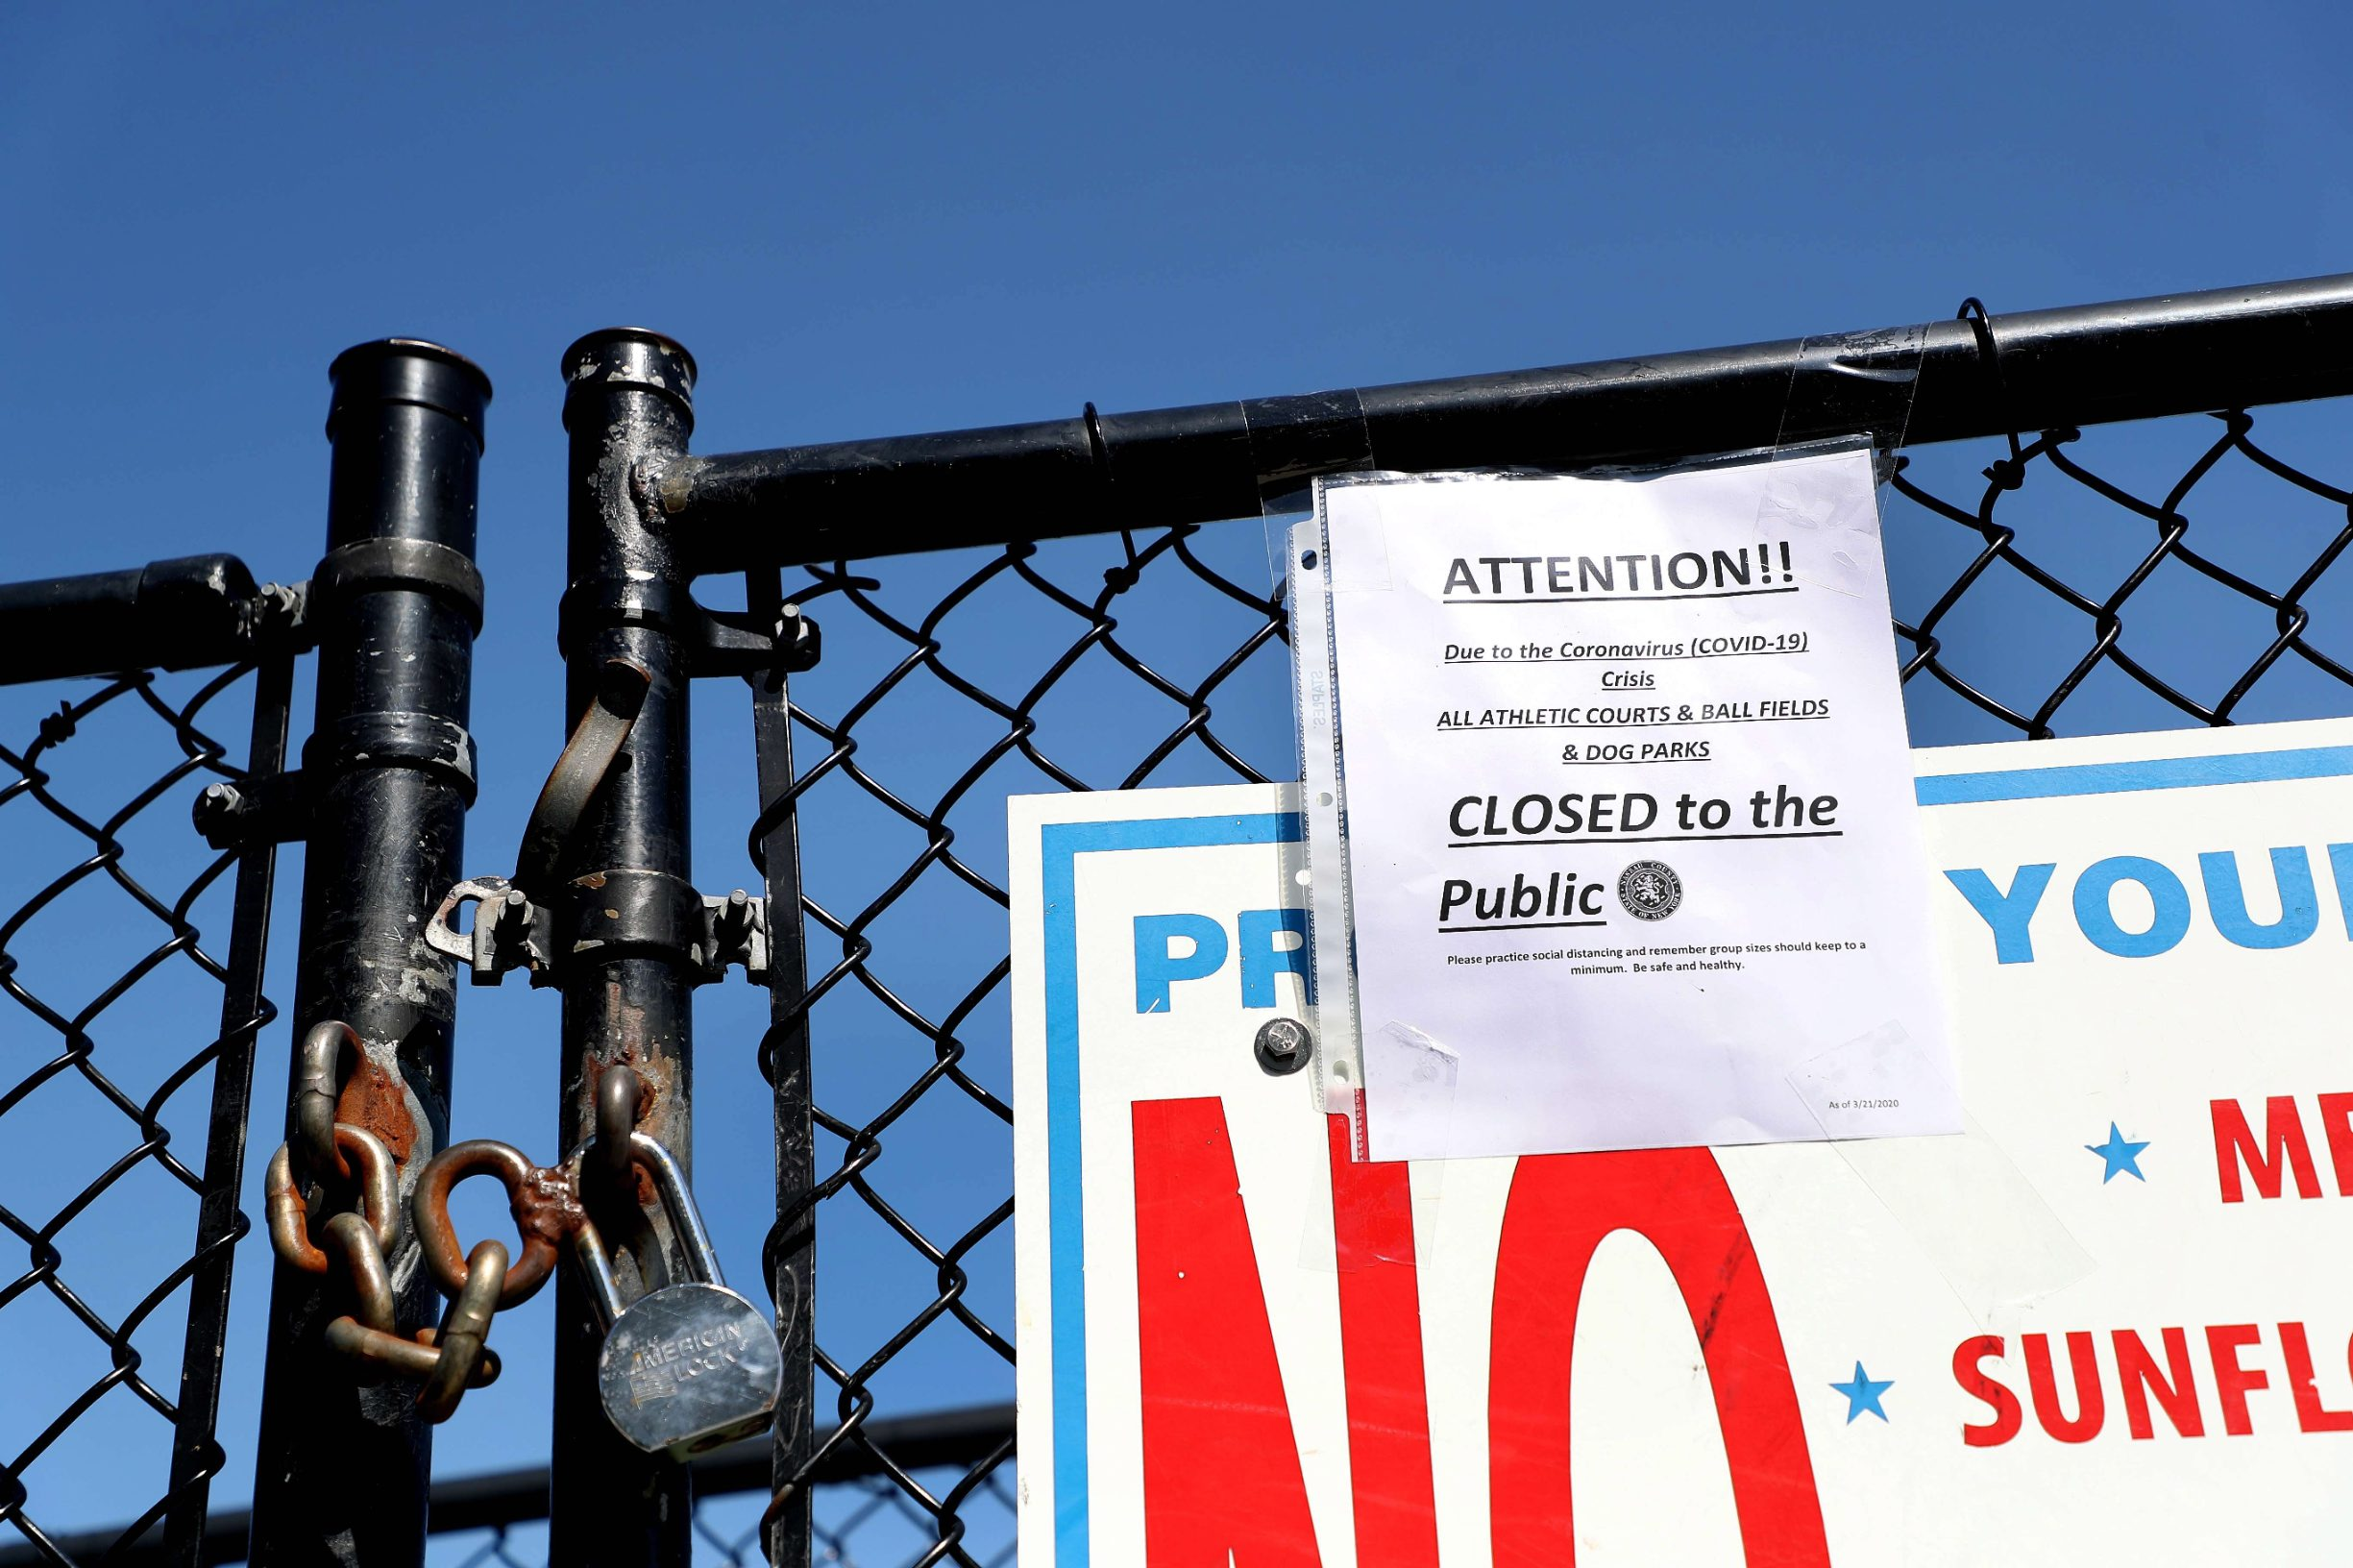 SEAFORD, NEW YORK, - MARCH 22: A sign shows that all athletic courts, ball fields, and Dog Parks are closed due to the coronavirus pandemic at Cedar Creek Park on March 20, 2020 in Seaford, New York. It has been encouraged that people keep a social distance of six feet or more to curtail the spread of the coronavirus. New York Governor Andrew Cuomo announced he was putting the state on